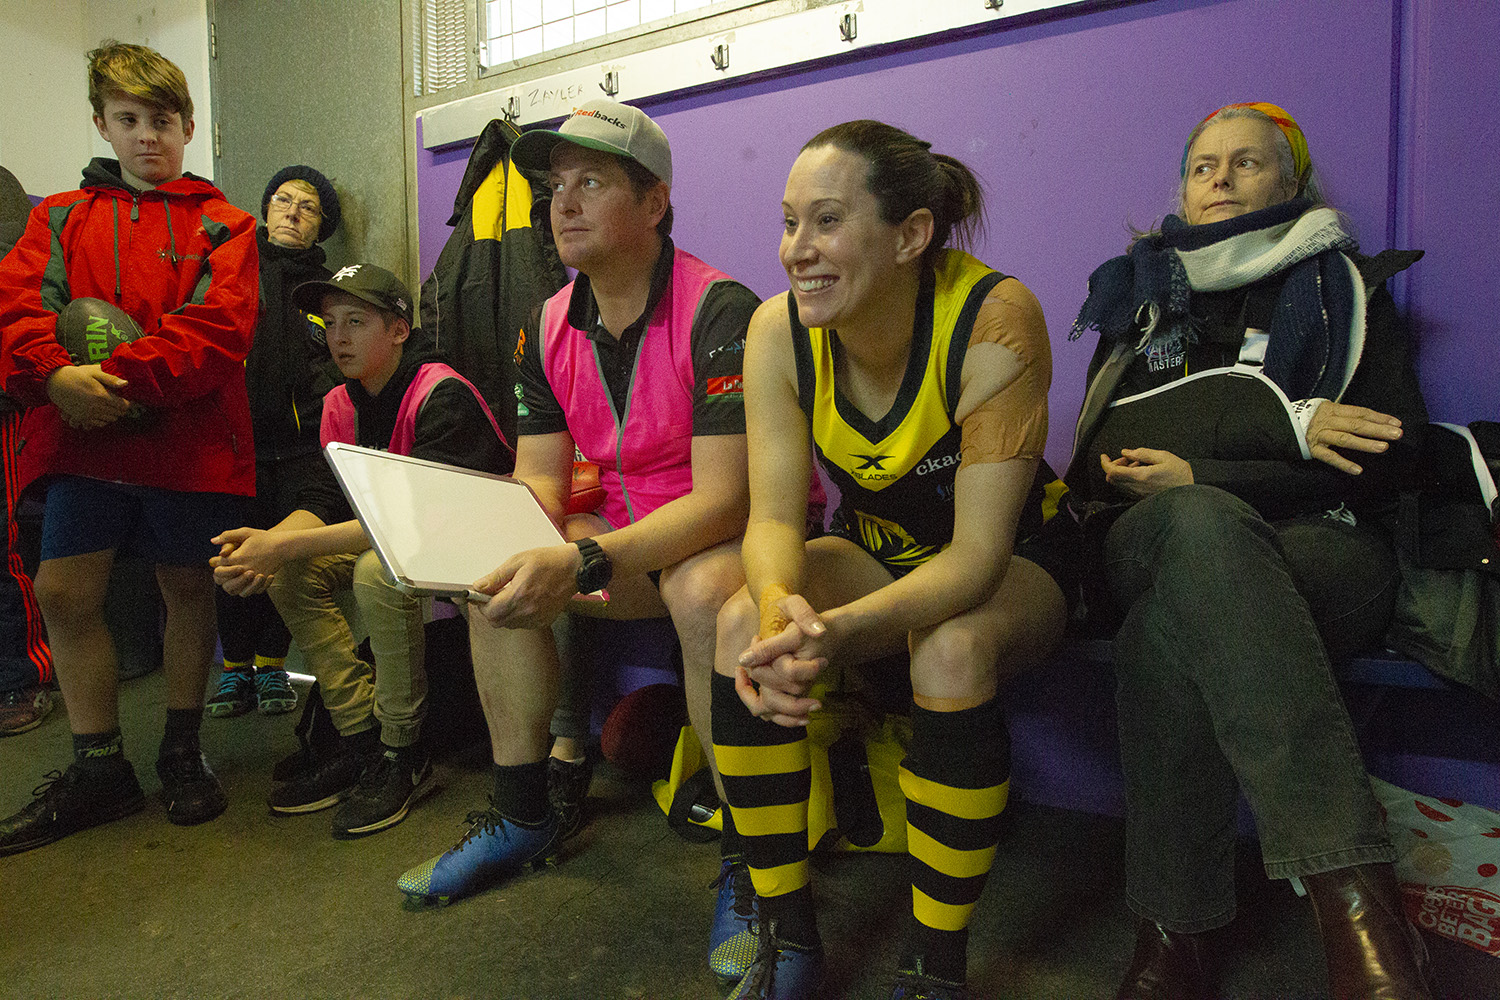 Hay spent the season with her partner Andrew Buckland (at left with whiteboard) as he became assistant coach for the Waverley Warriors!